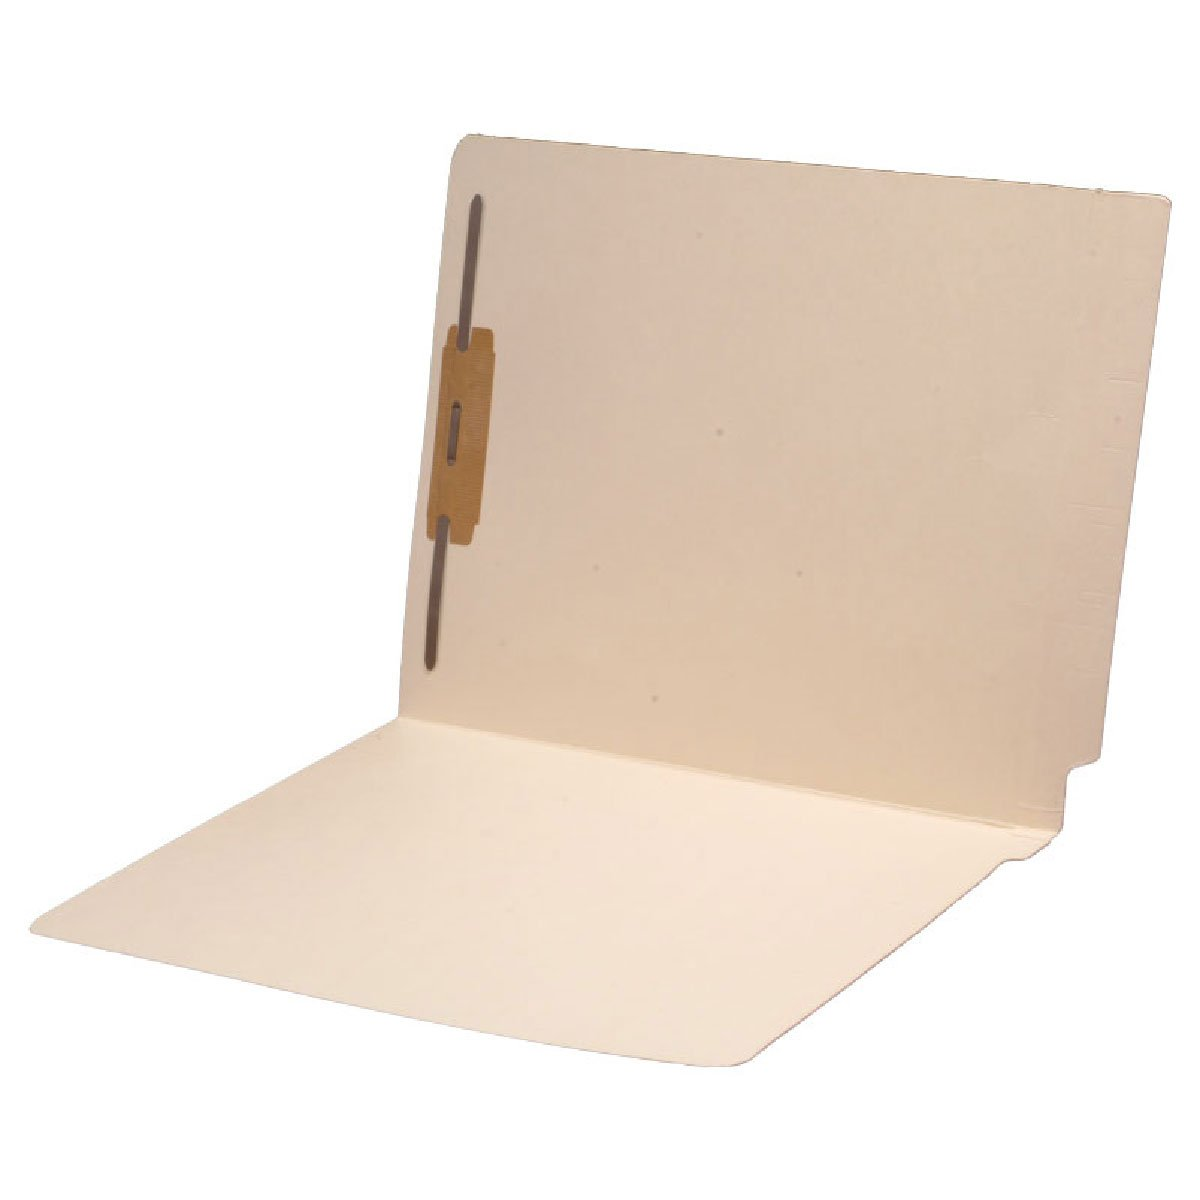 14 pt Manila Folders, Full Cut 2-Ply End Tab, Letter Size, Fastener Pos #1 (Carton of 250)